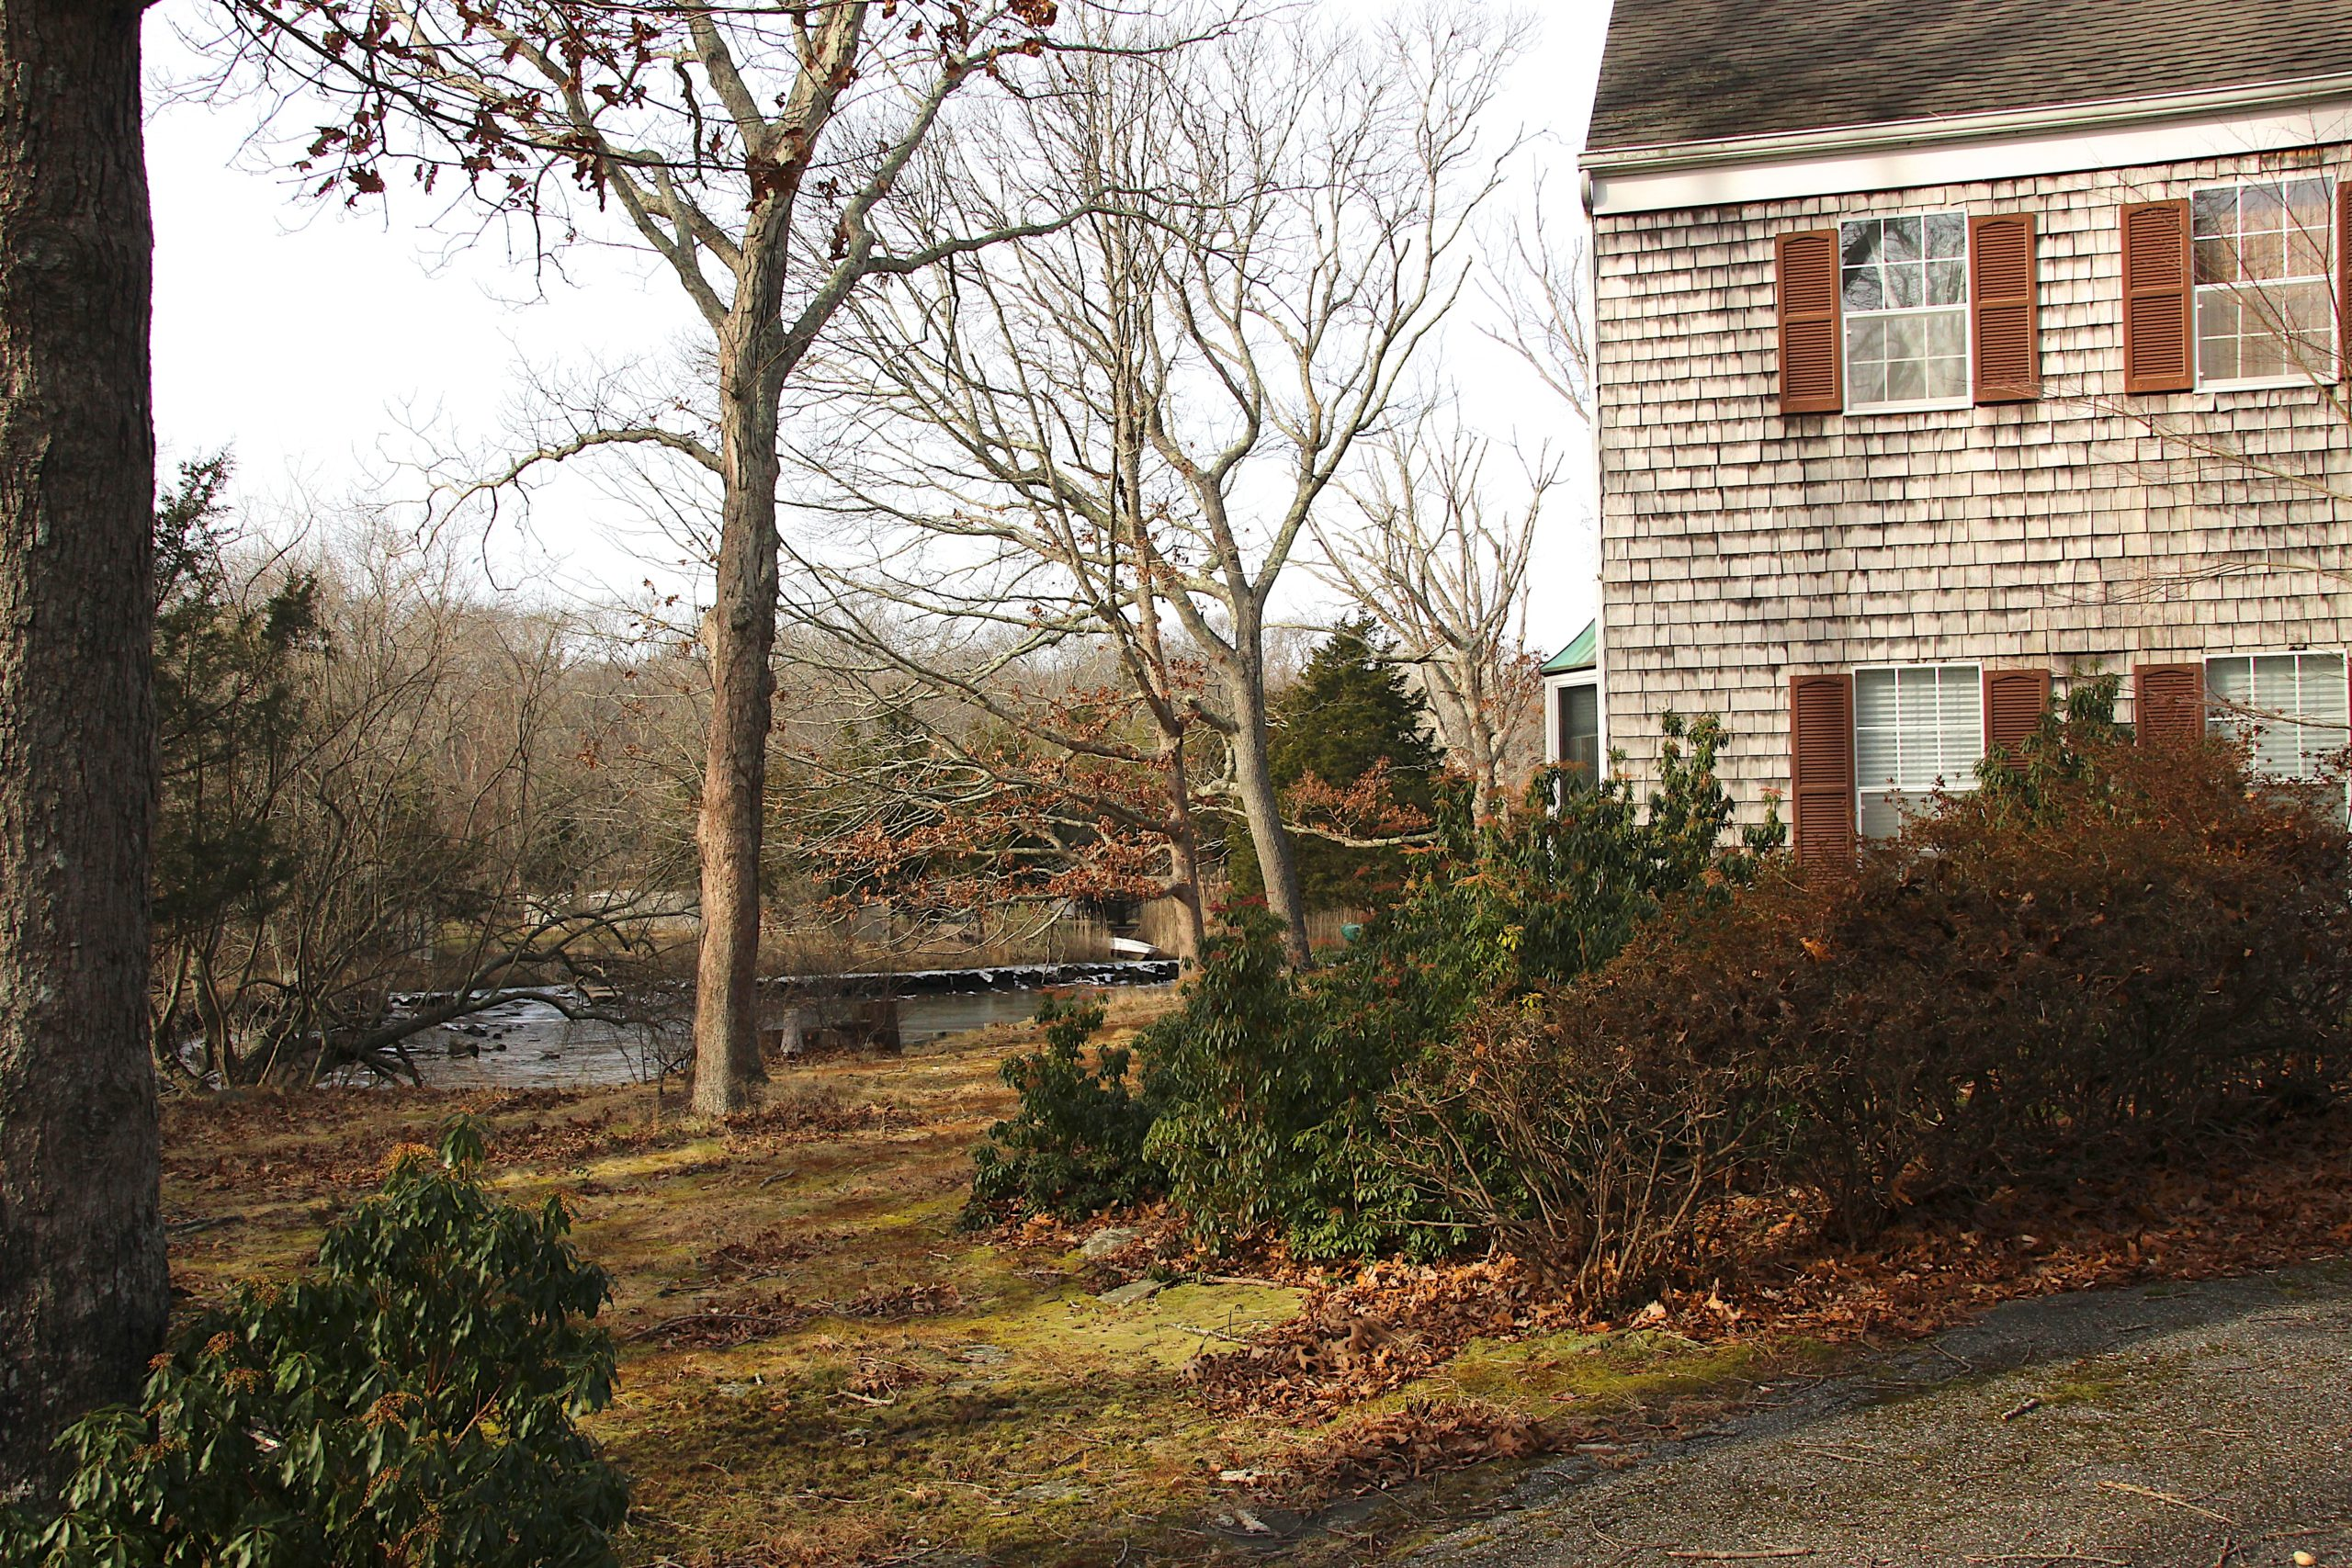 East Hampton Town has proposed purchasing 14 Kings Point Road in Springs. The house, which sits at the headwaters of Hog Creek, would be torn down and the land restored to a natural state.